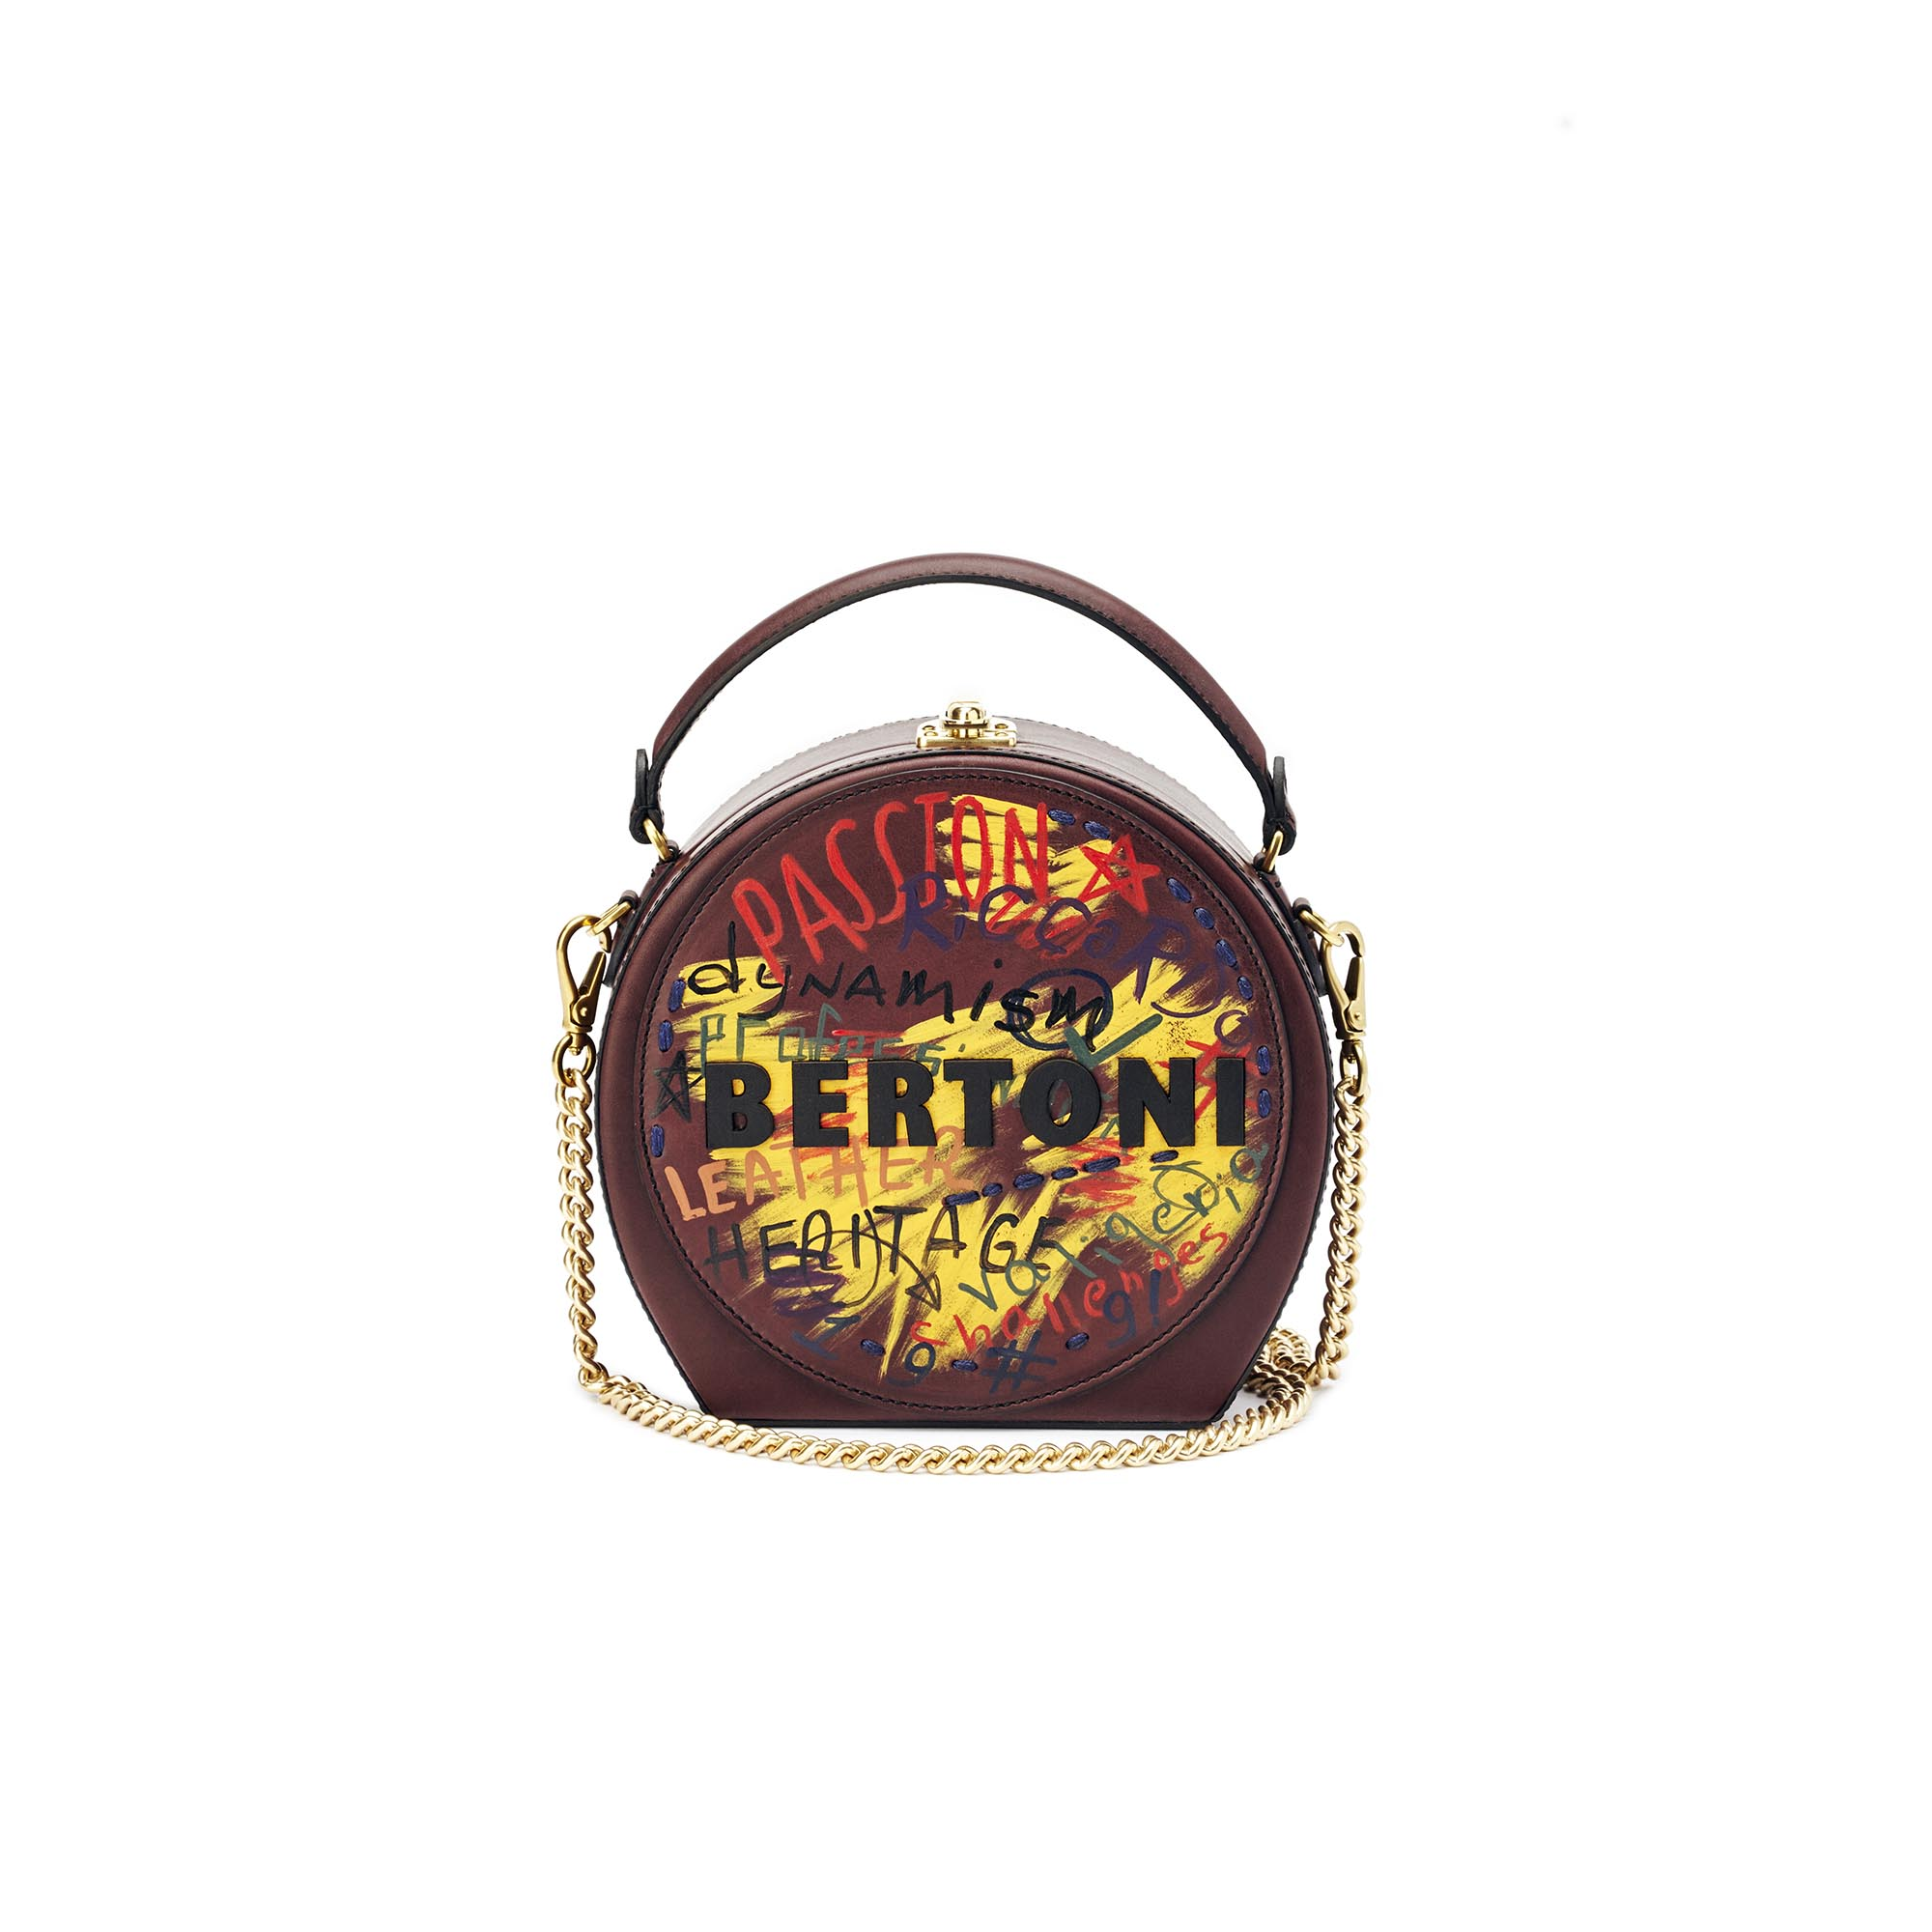 Regular-Bertoncina-bordeaux-passion-french-calf-bag-Bertoni-1949_01